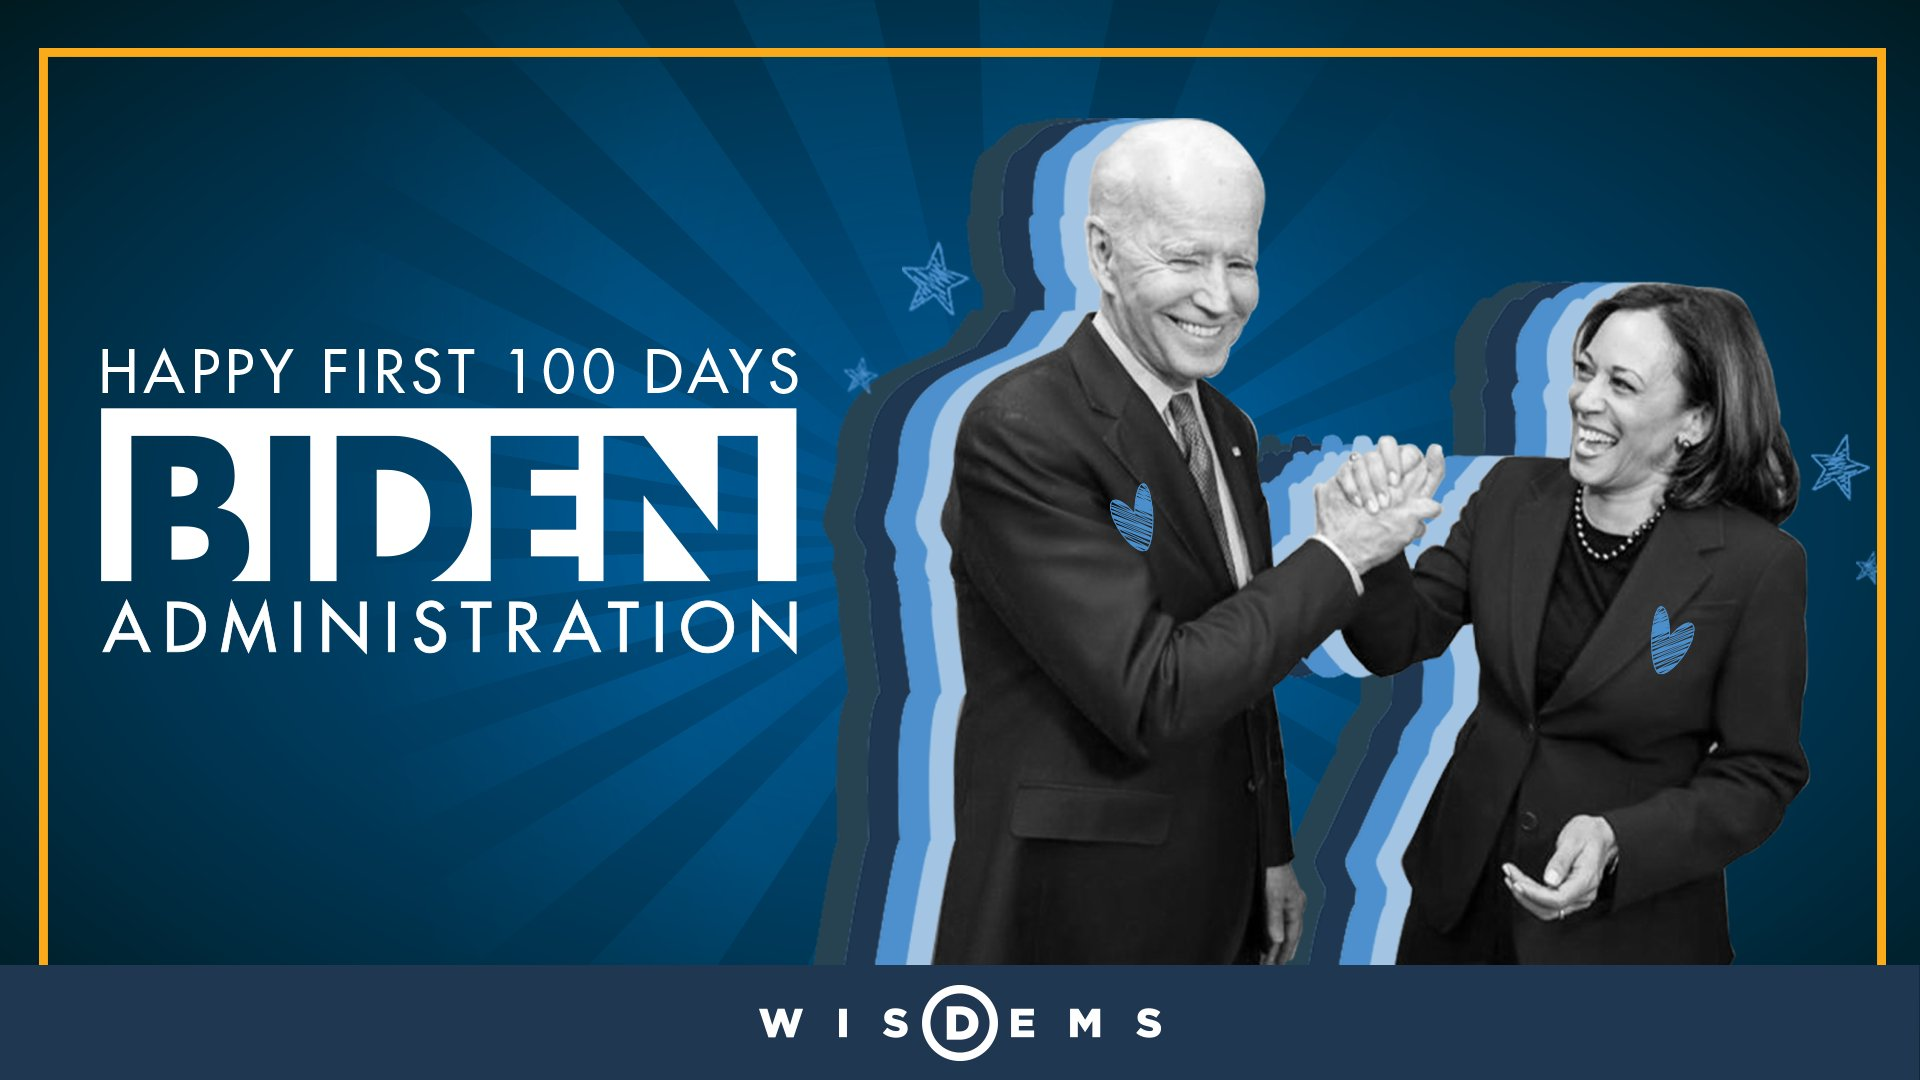 Graphic celebrating the first 100 days of the Biden Administration.